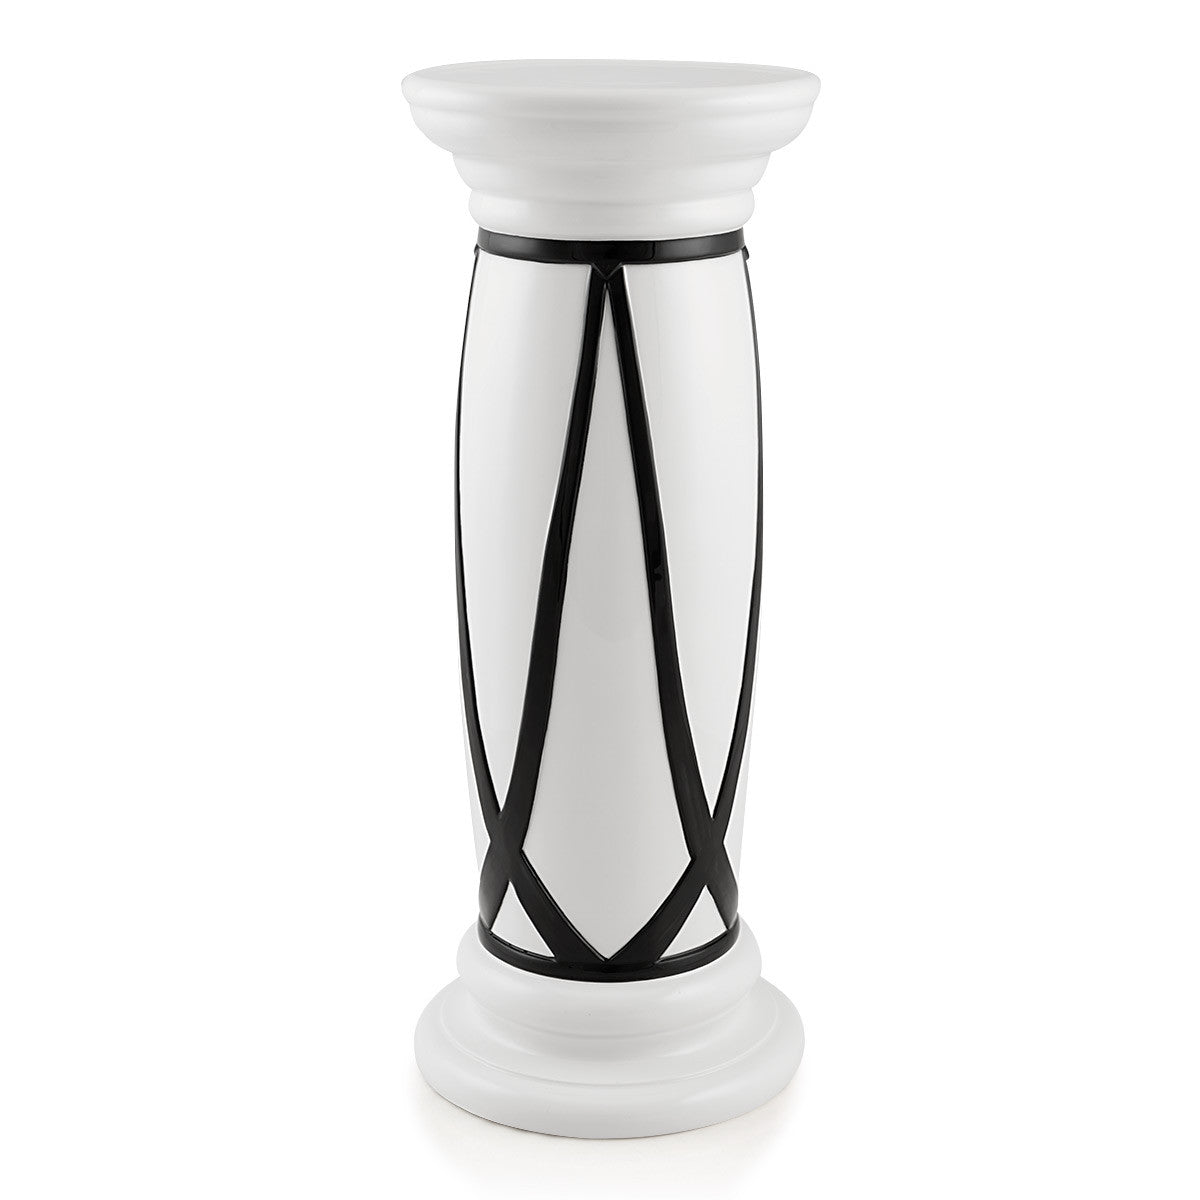 Decorative columns | Modern Design | Handmade pottery | black and white